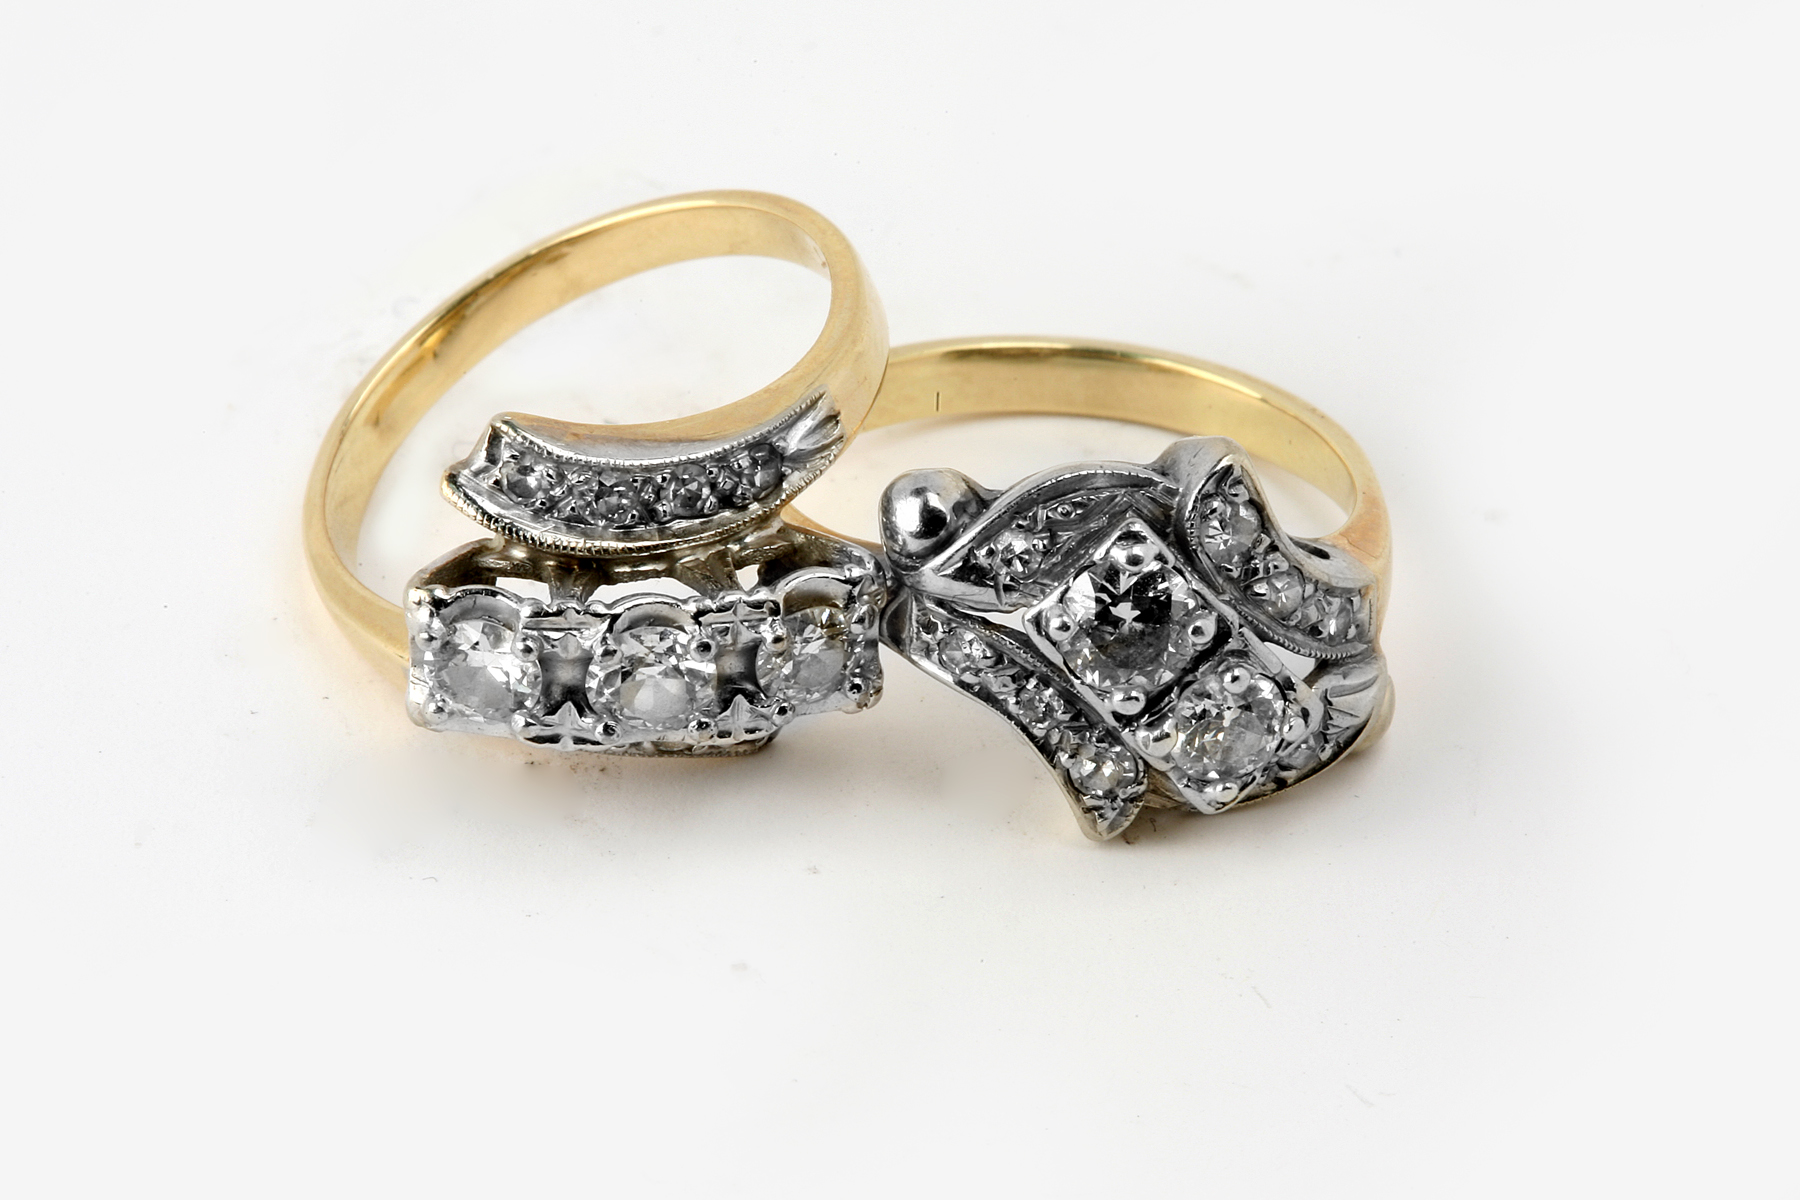 Antique diamonds in two wedding rings